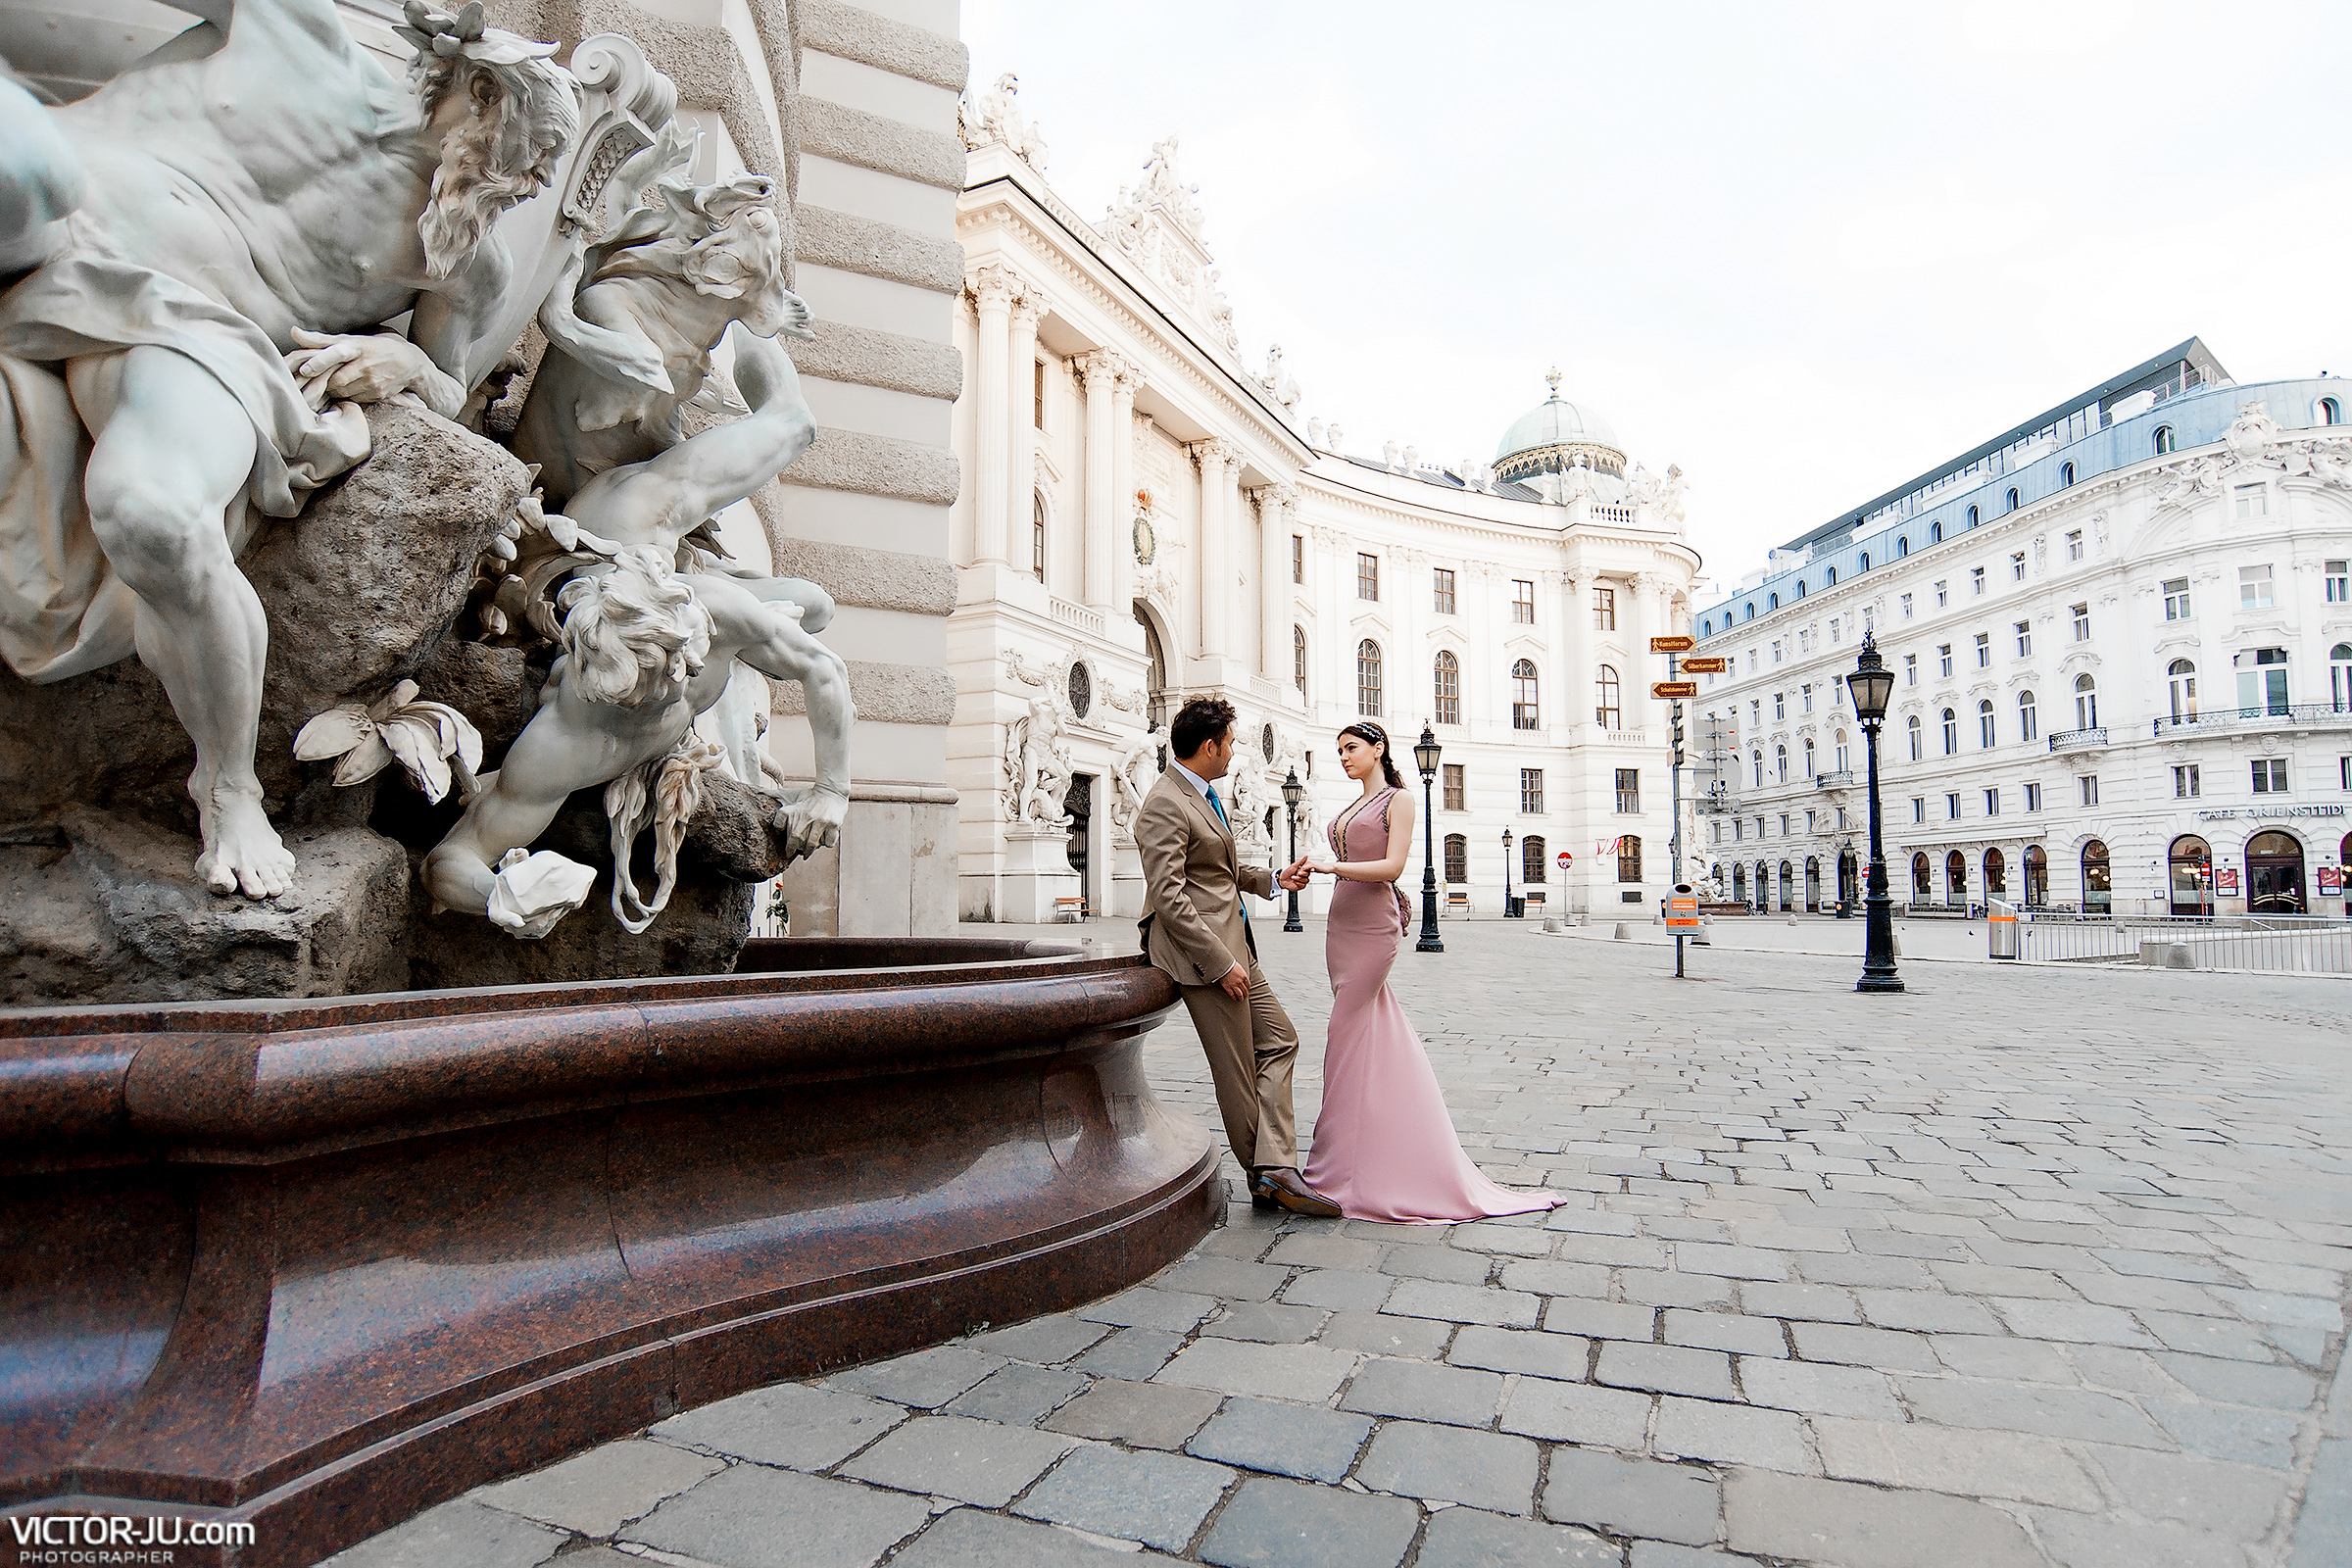 Pre-wedding photo session in Vienna